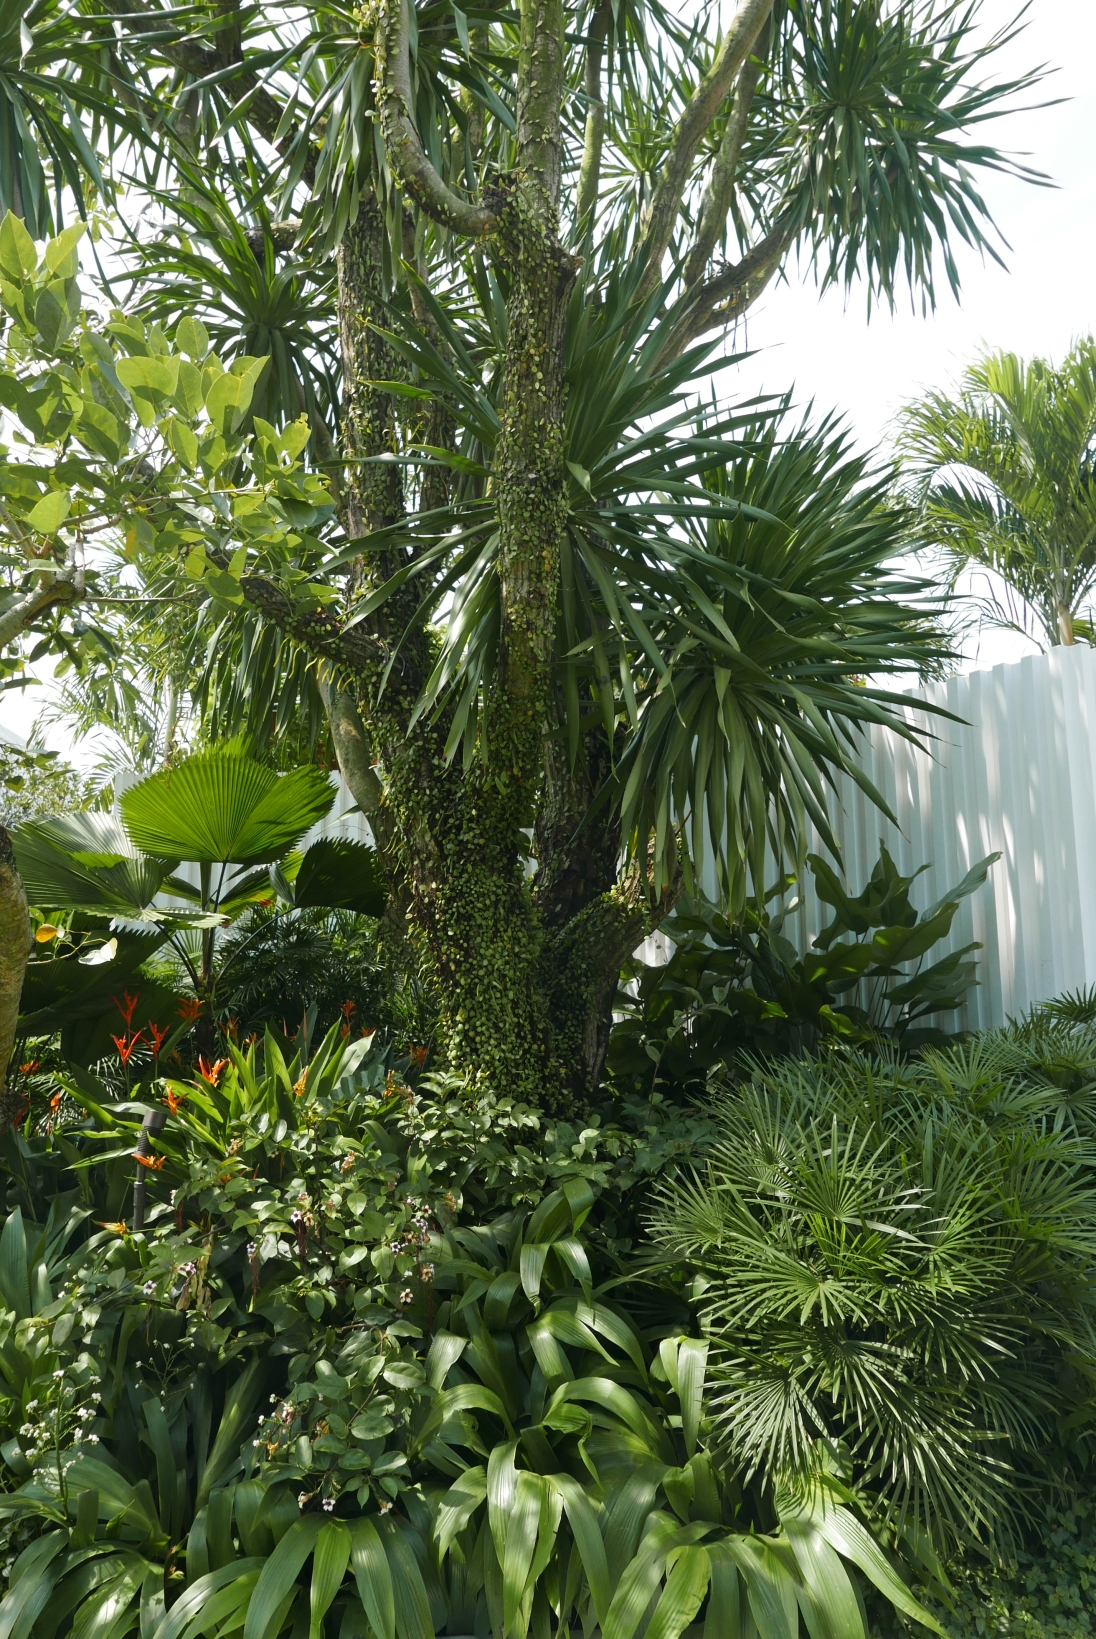 Verdant layers of ferns, tropical bulbs, palms and dracaena.